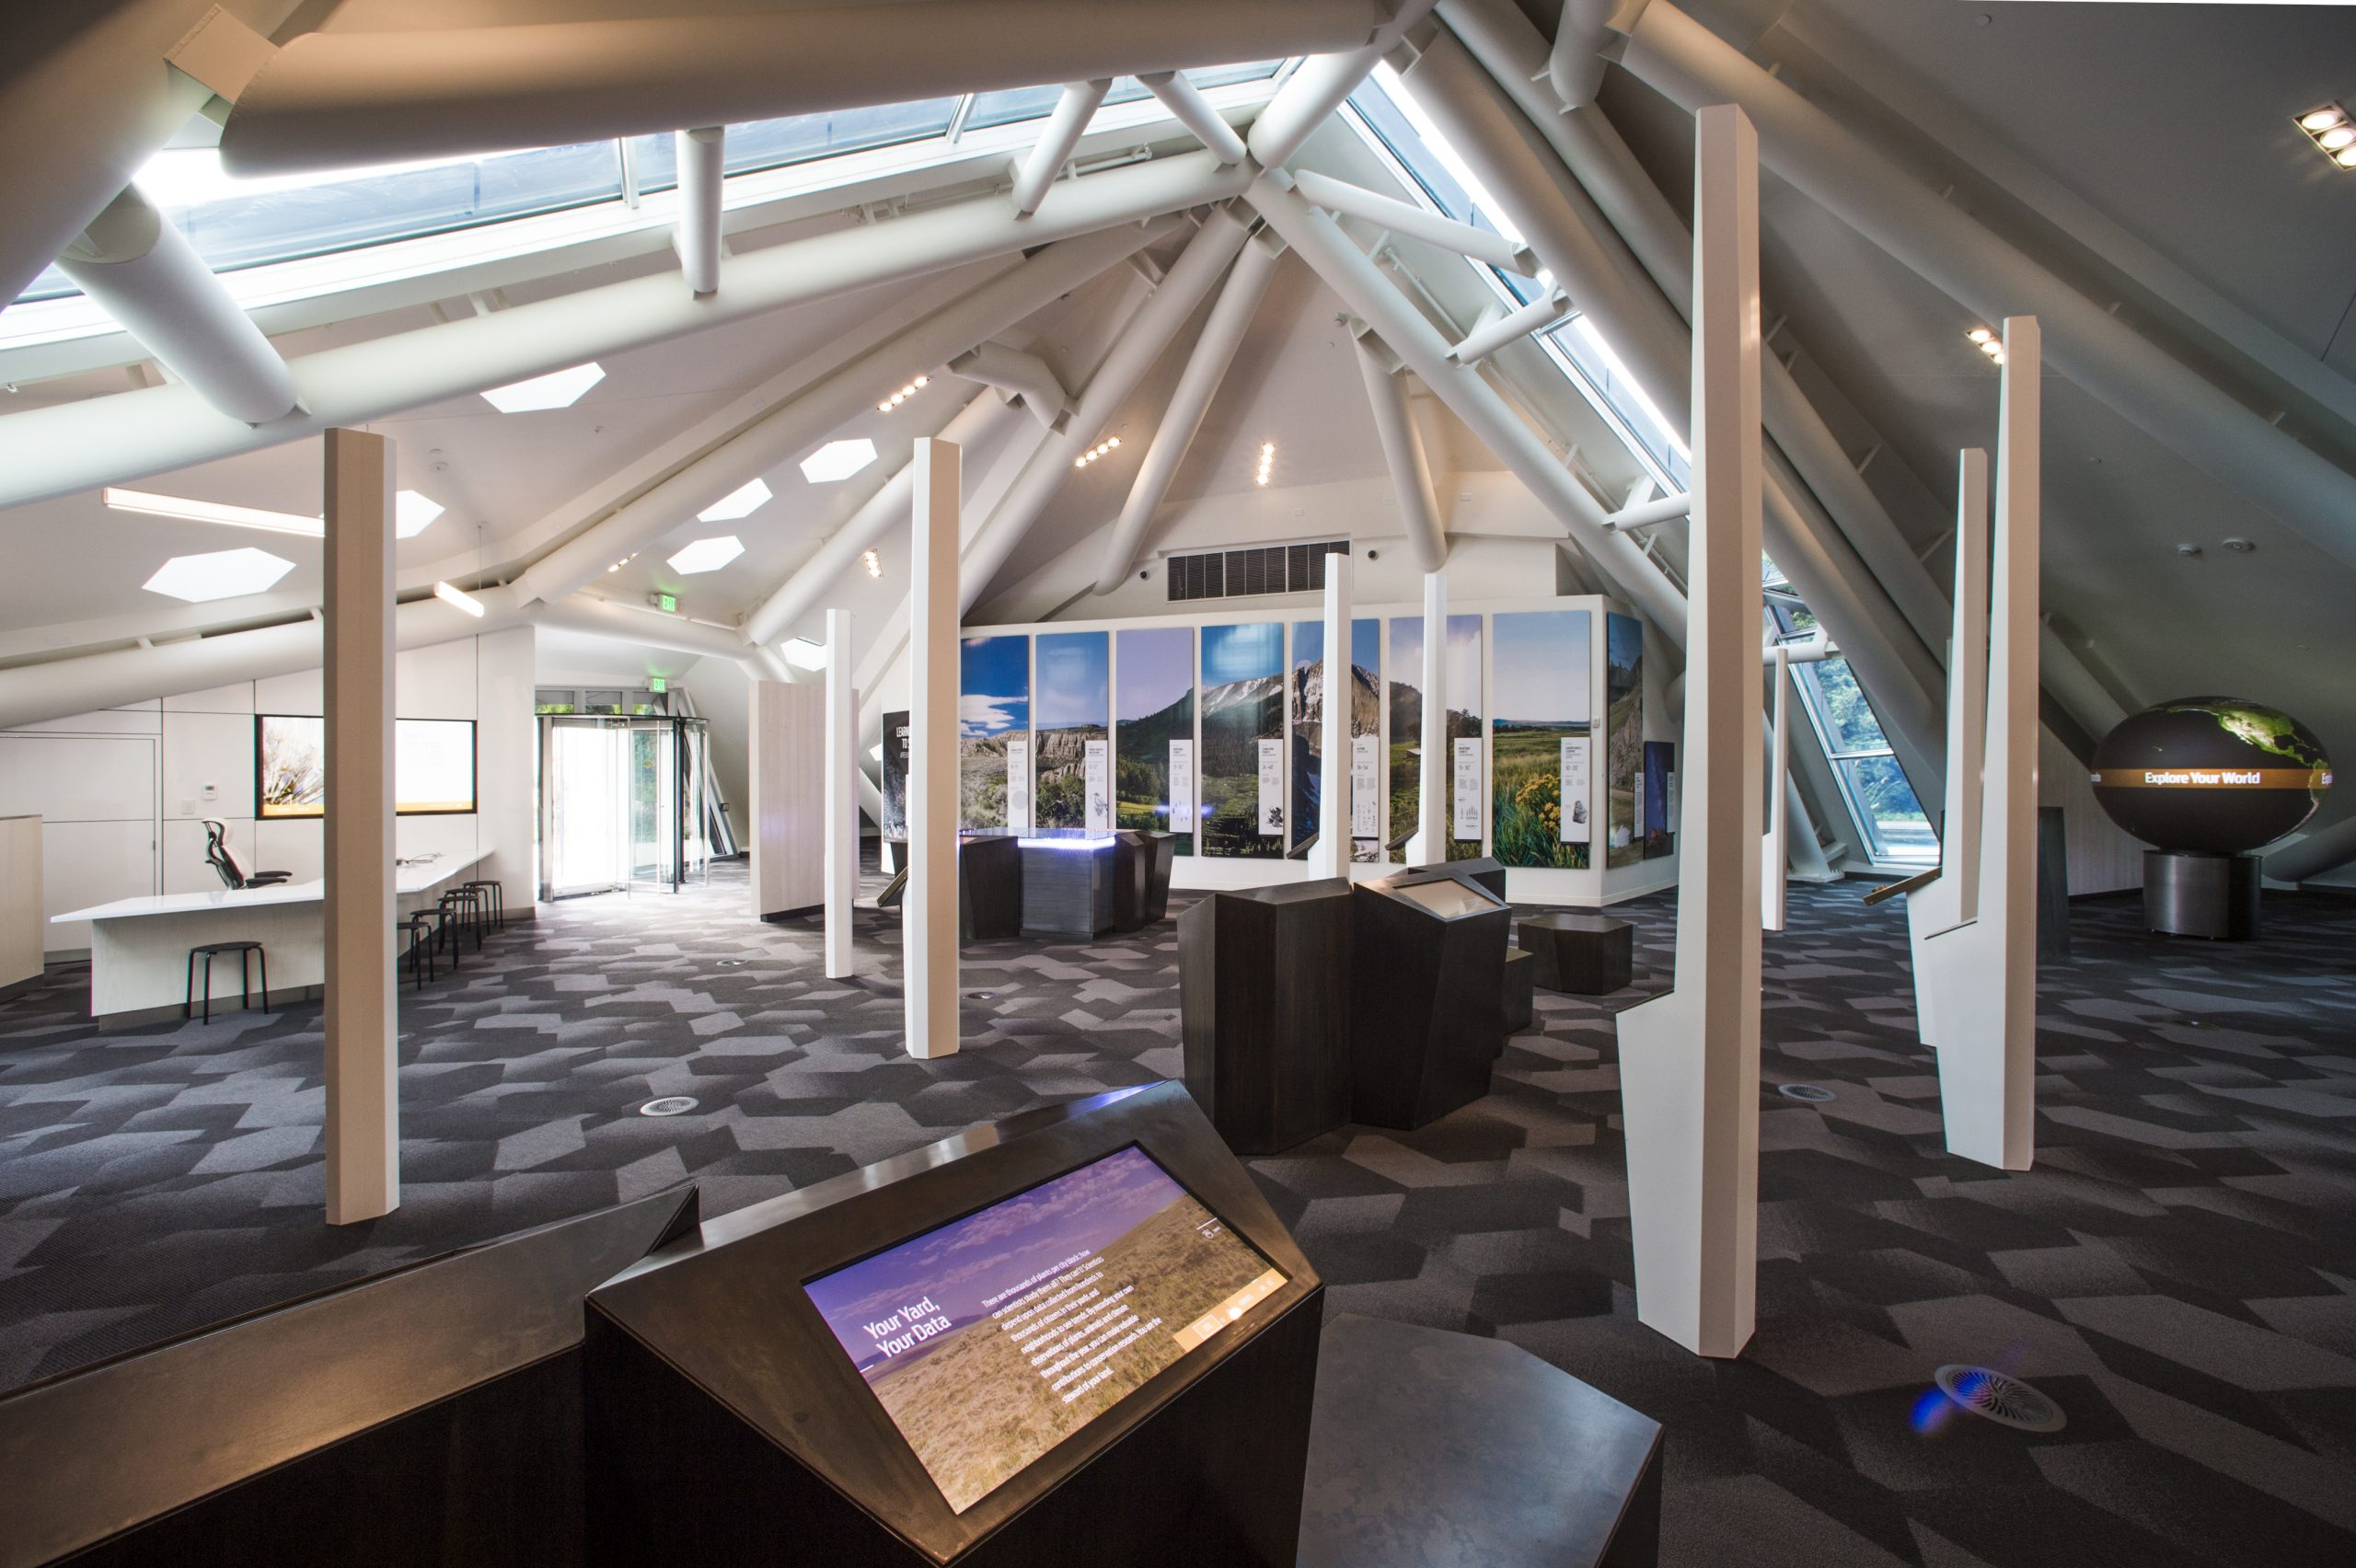 Through touchscreens, sounds, video, and more, the interior of the Science Pyramid brings guests closer to nature through technology.